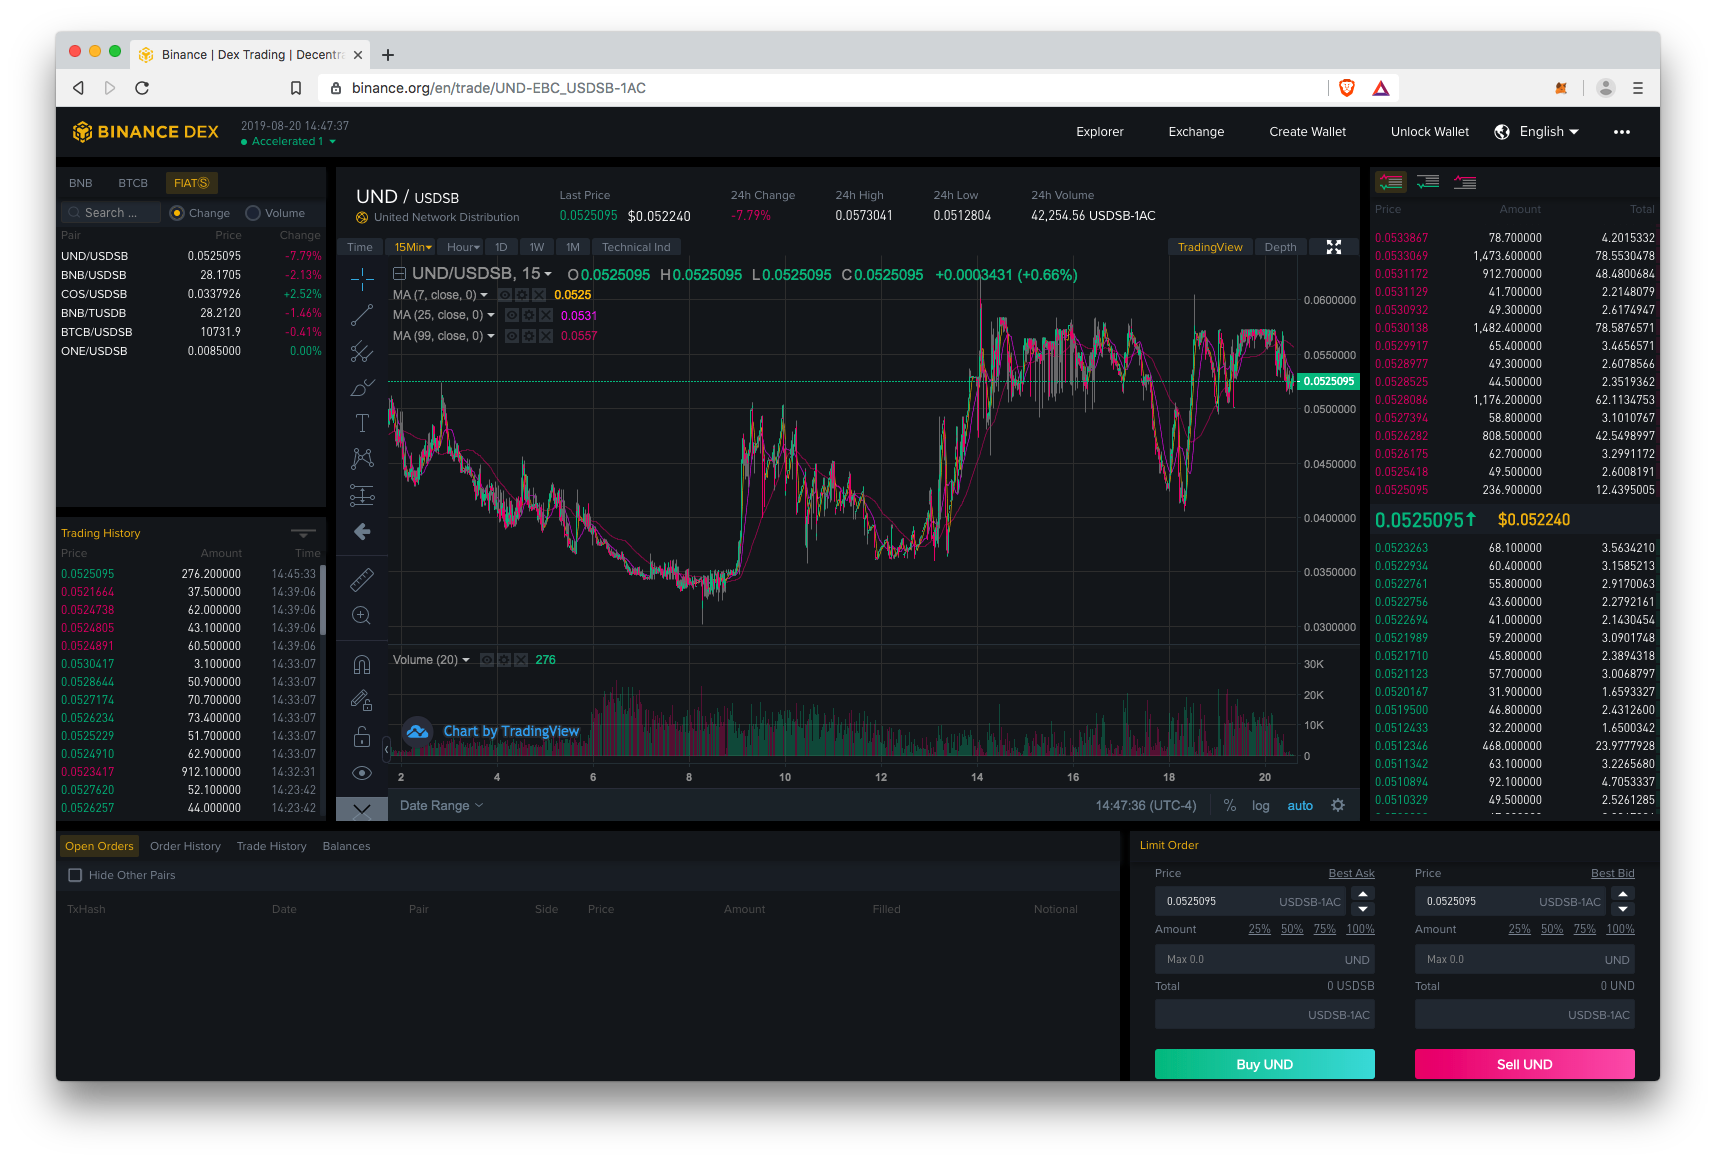 Binance DEX